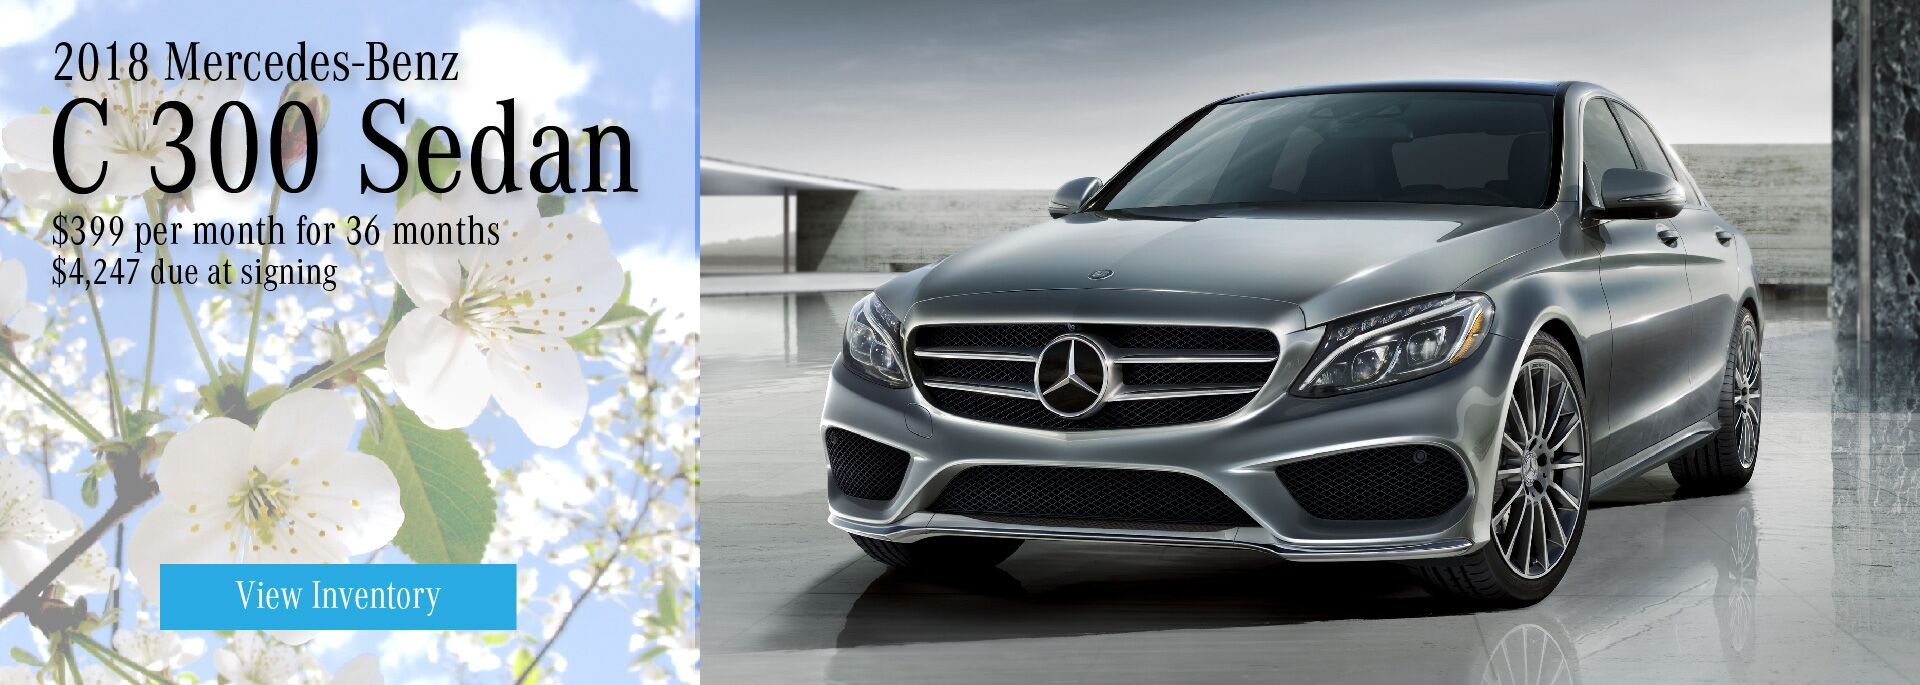 March C-Class